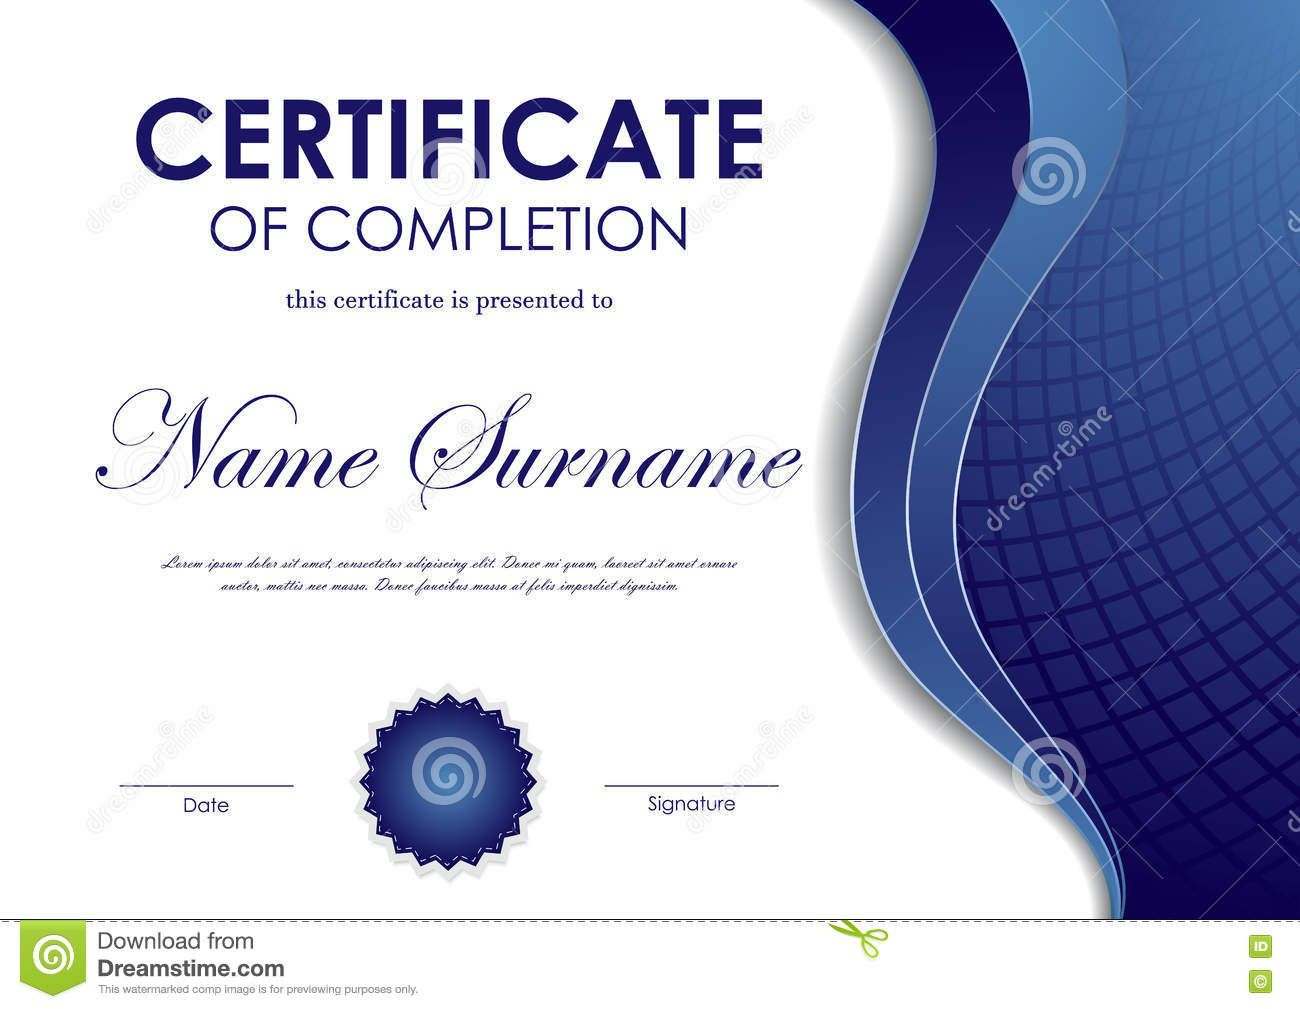 003 Wondrou Certificate Of Completion Template Free Design  Training Download WordFull